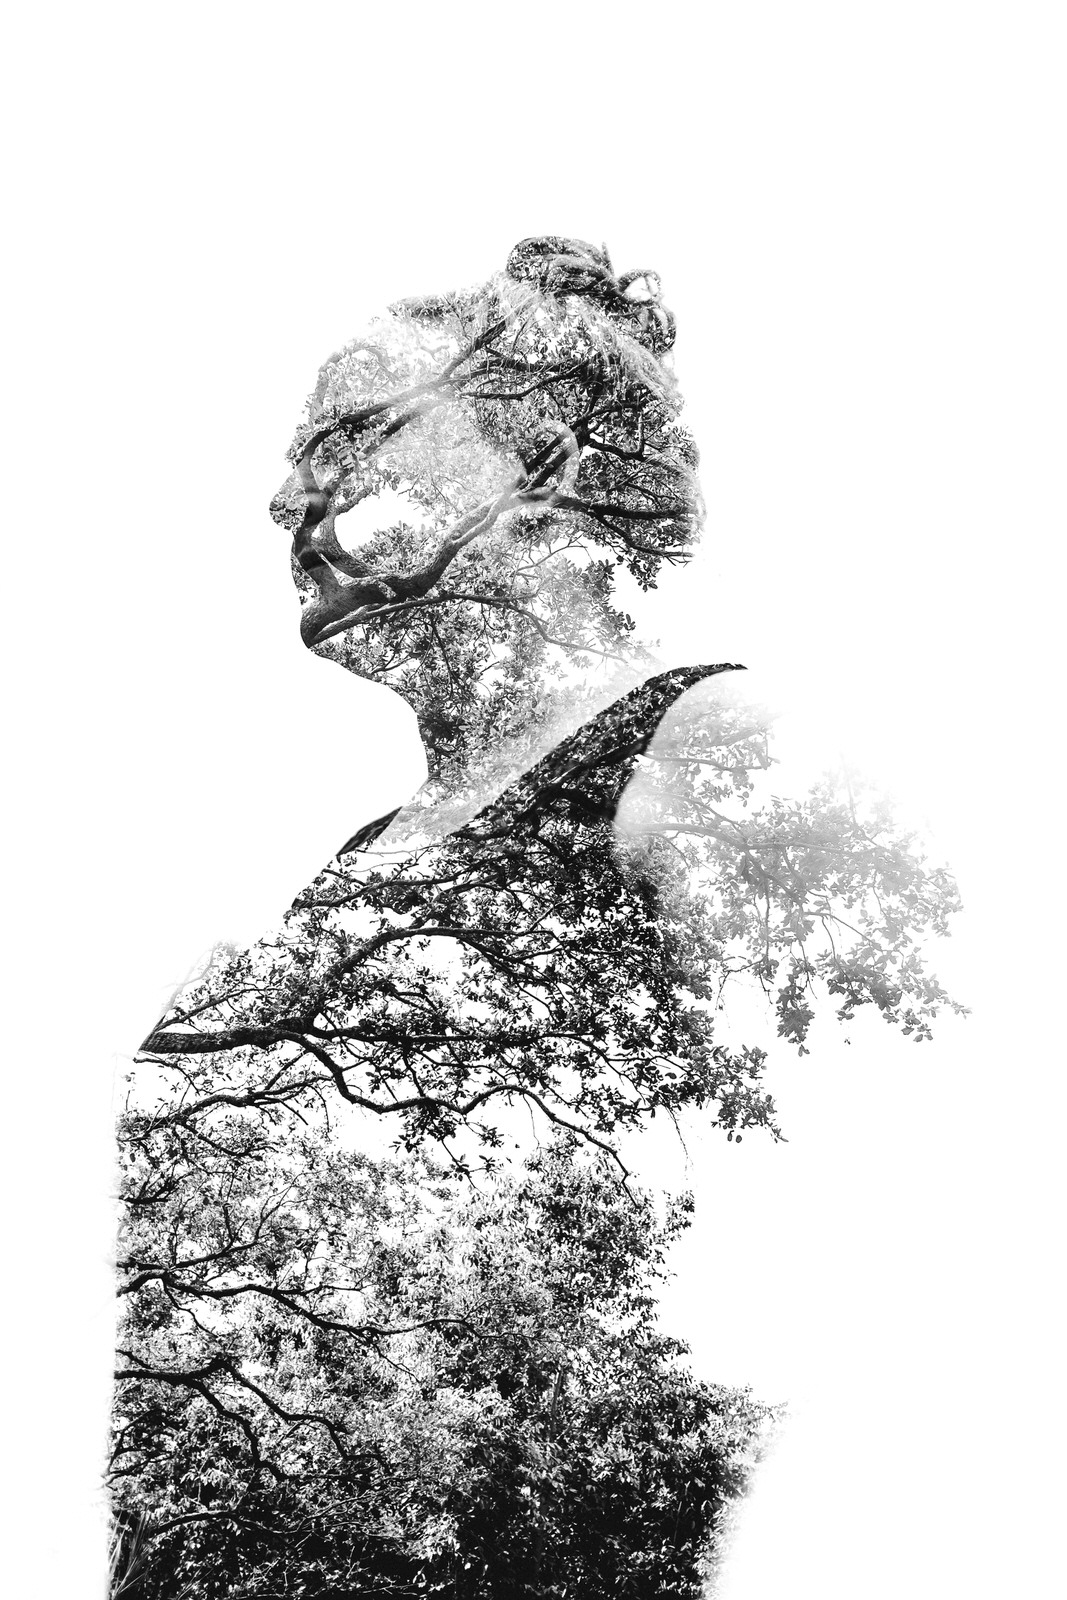 black and white double exposure in camera canon 5d mark iii